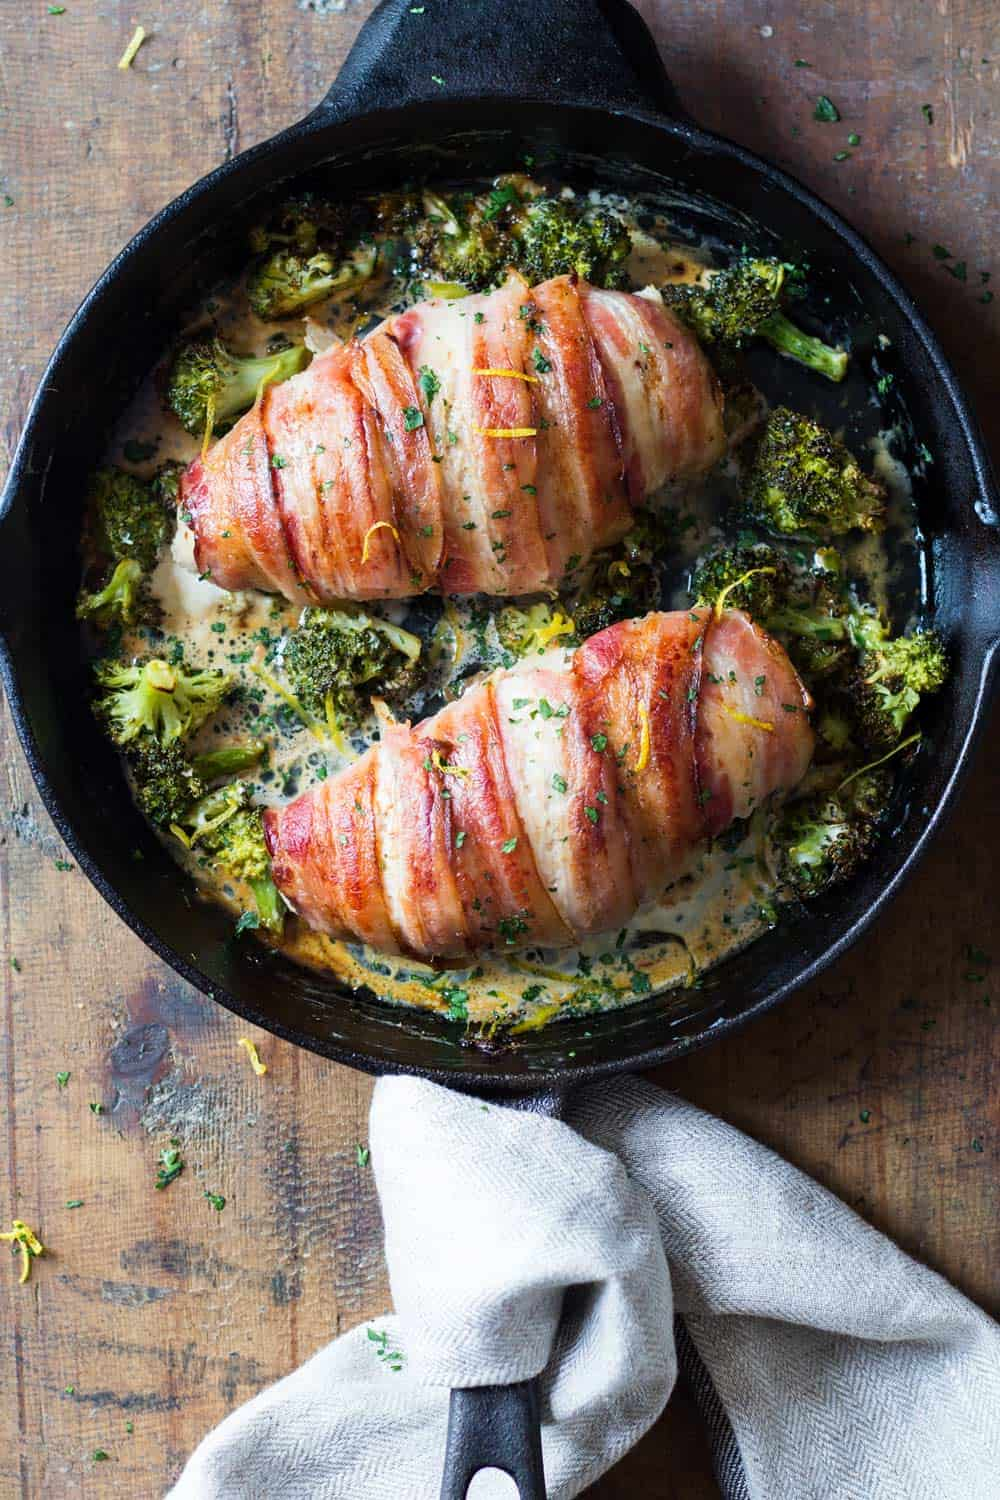 Top down view of baked bacon-wrapped chicken breast in black pan with broccoli